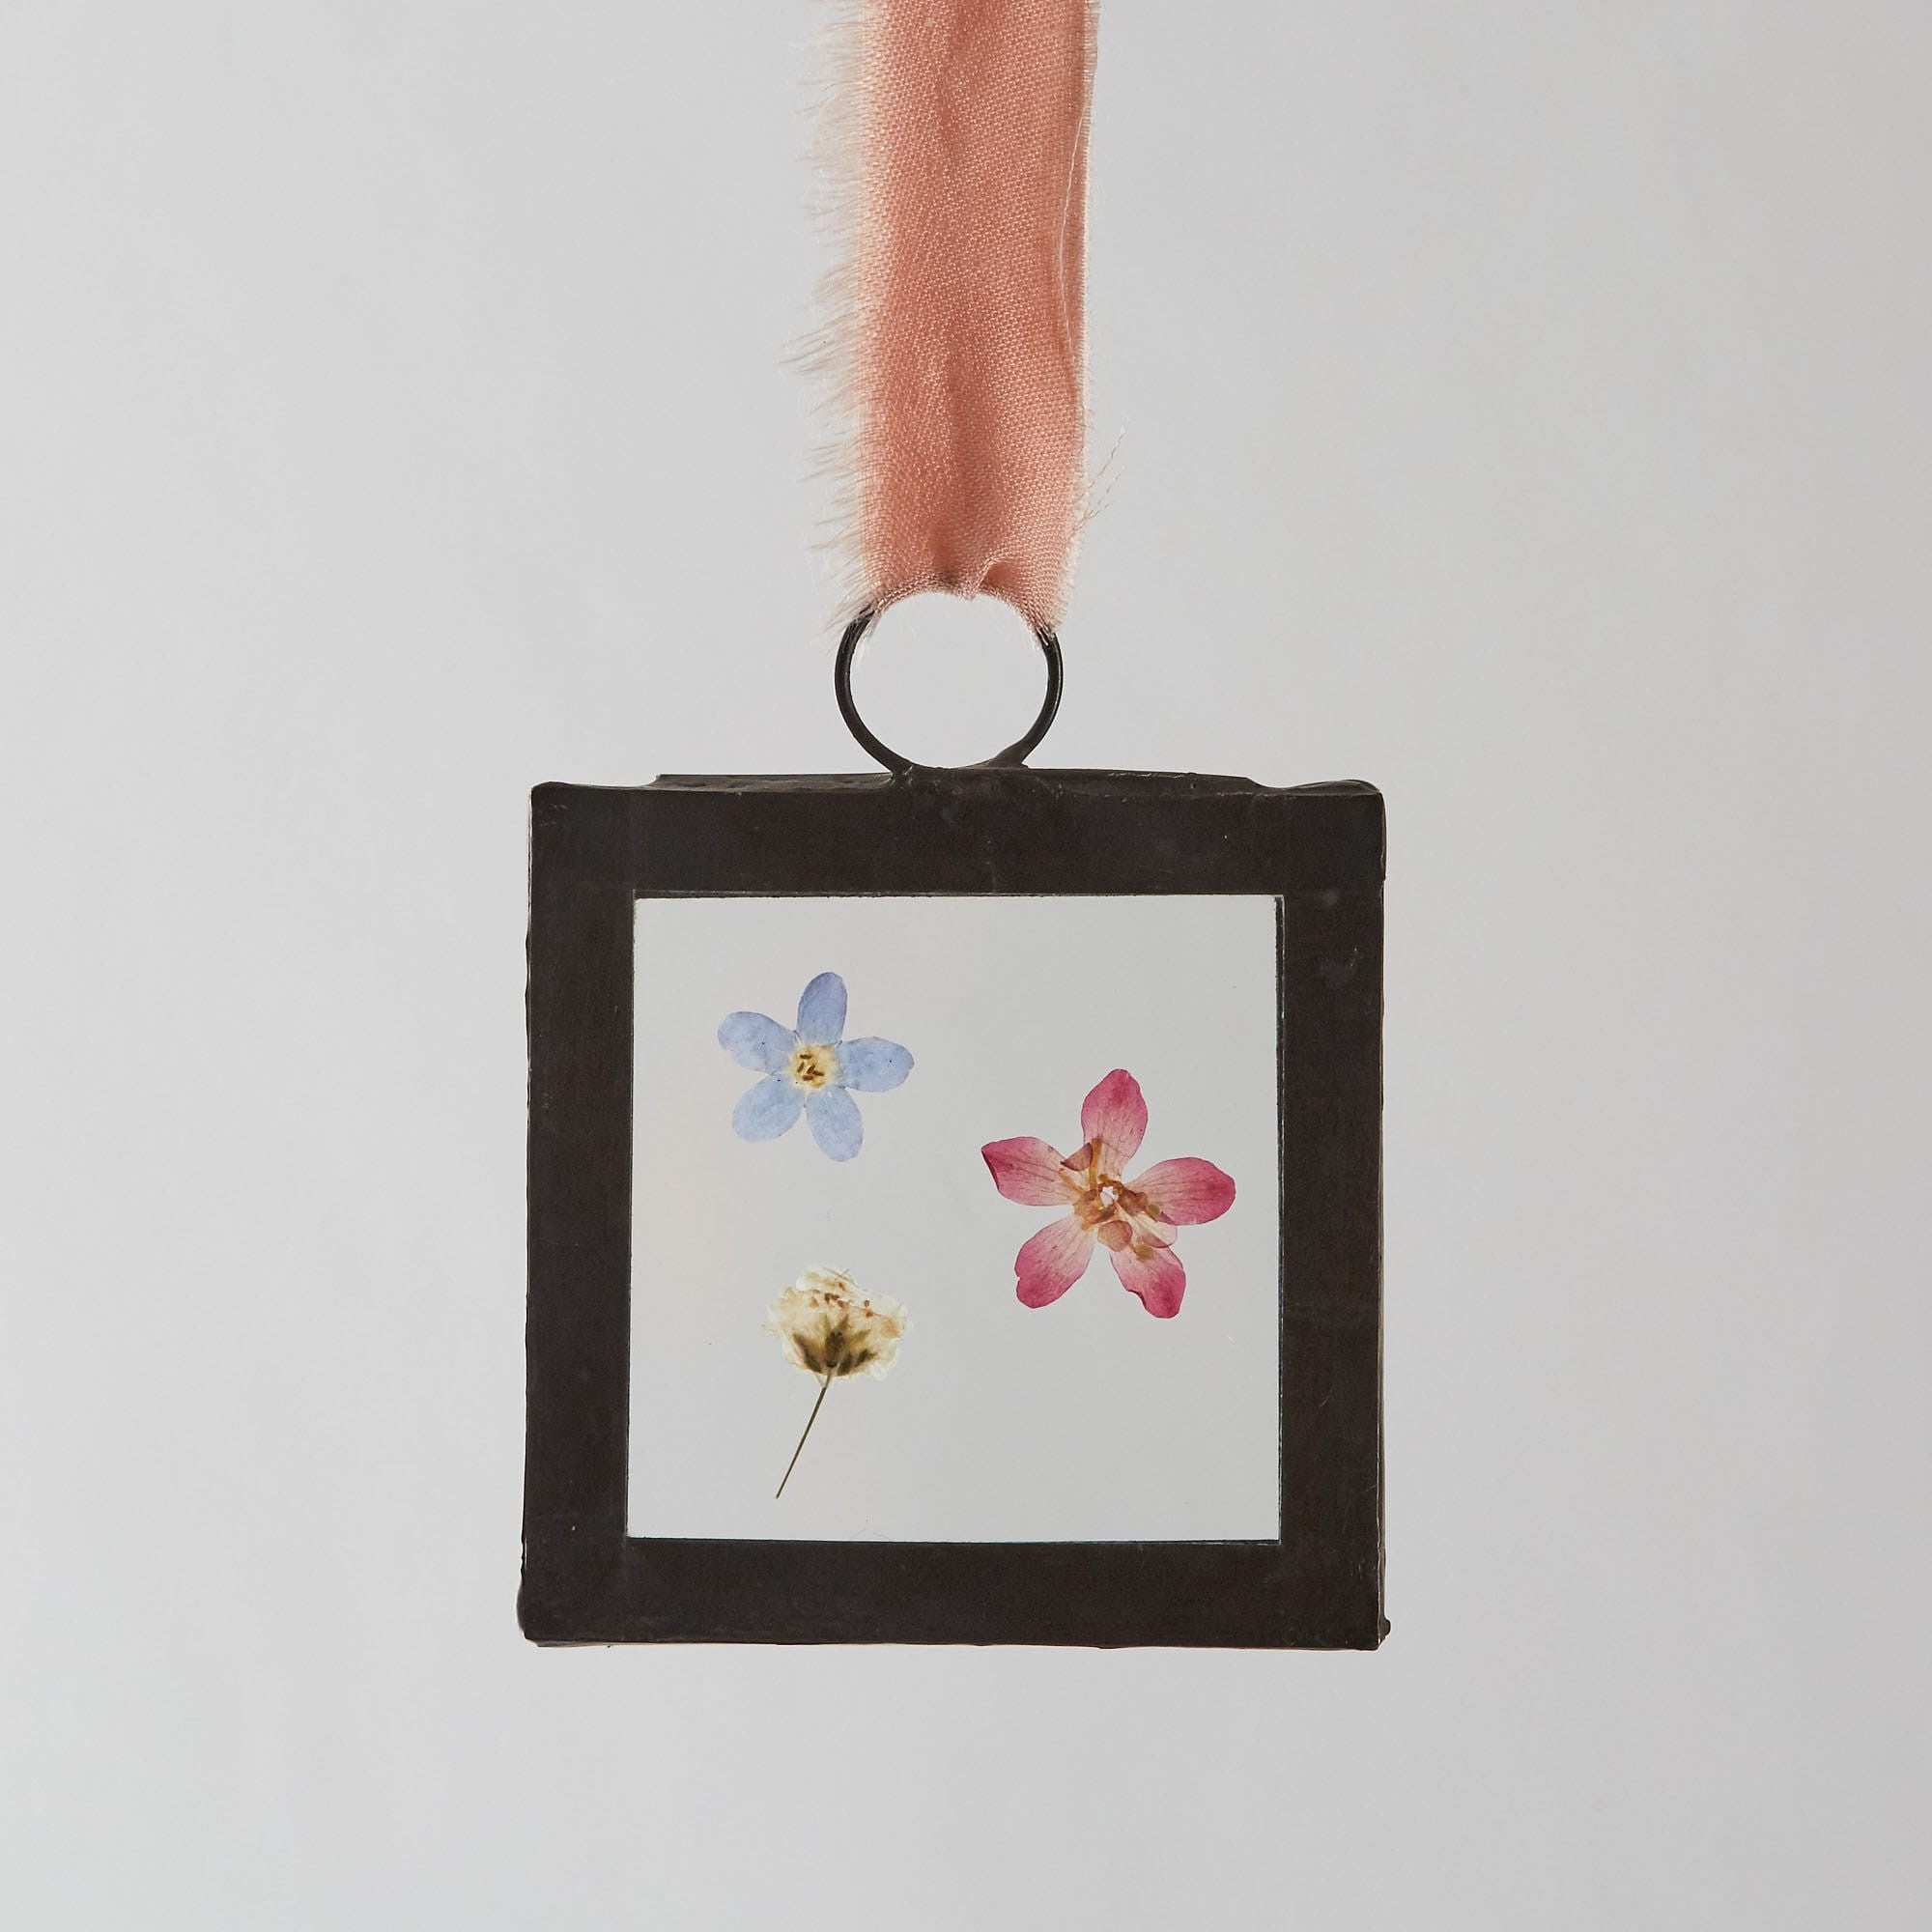 Pressed Flower Glass Frame Picture – Small Square (2 options ...